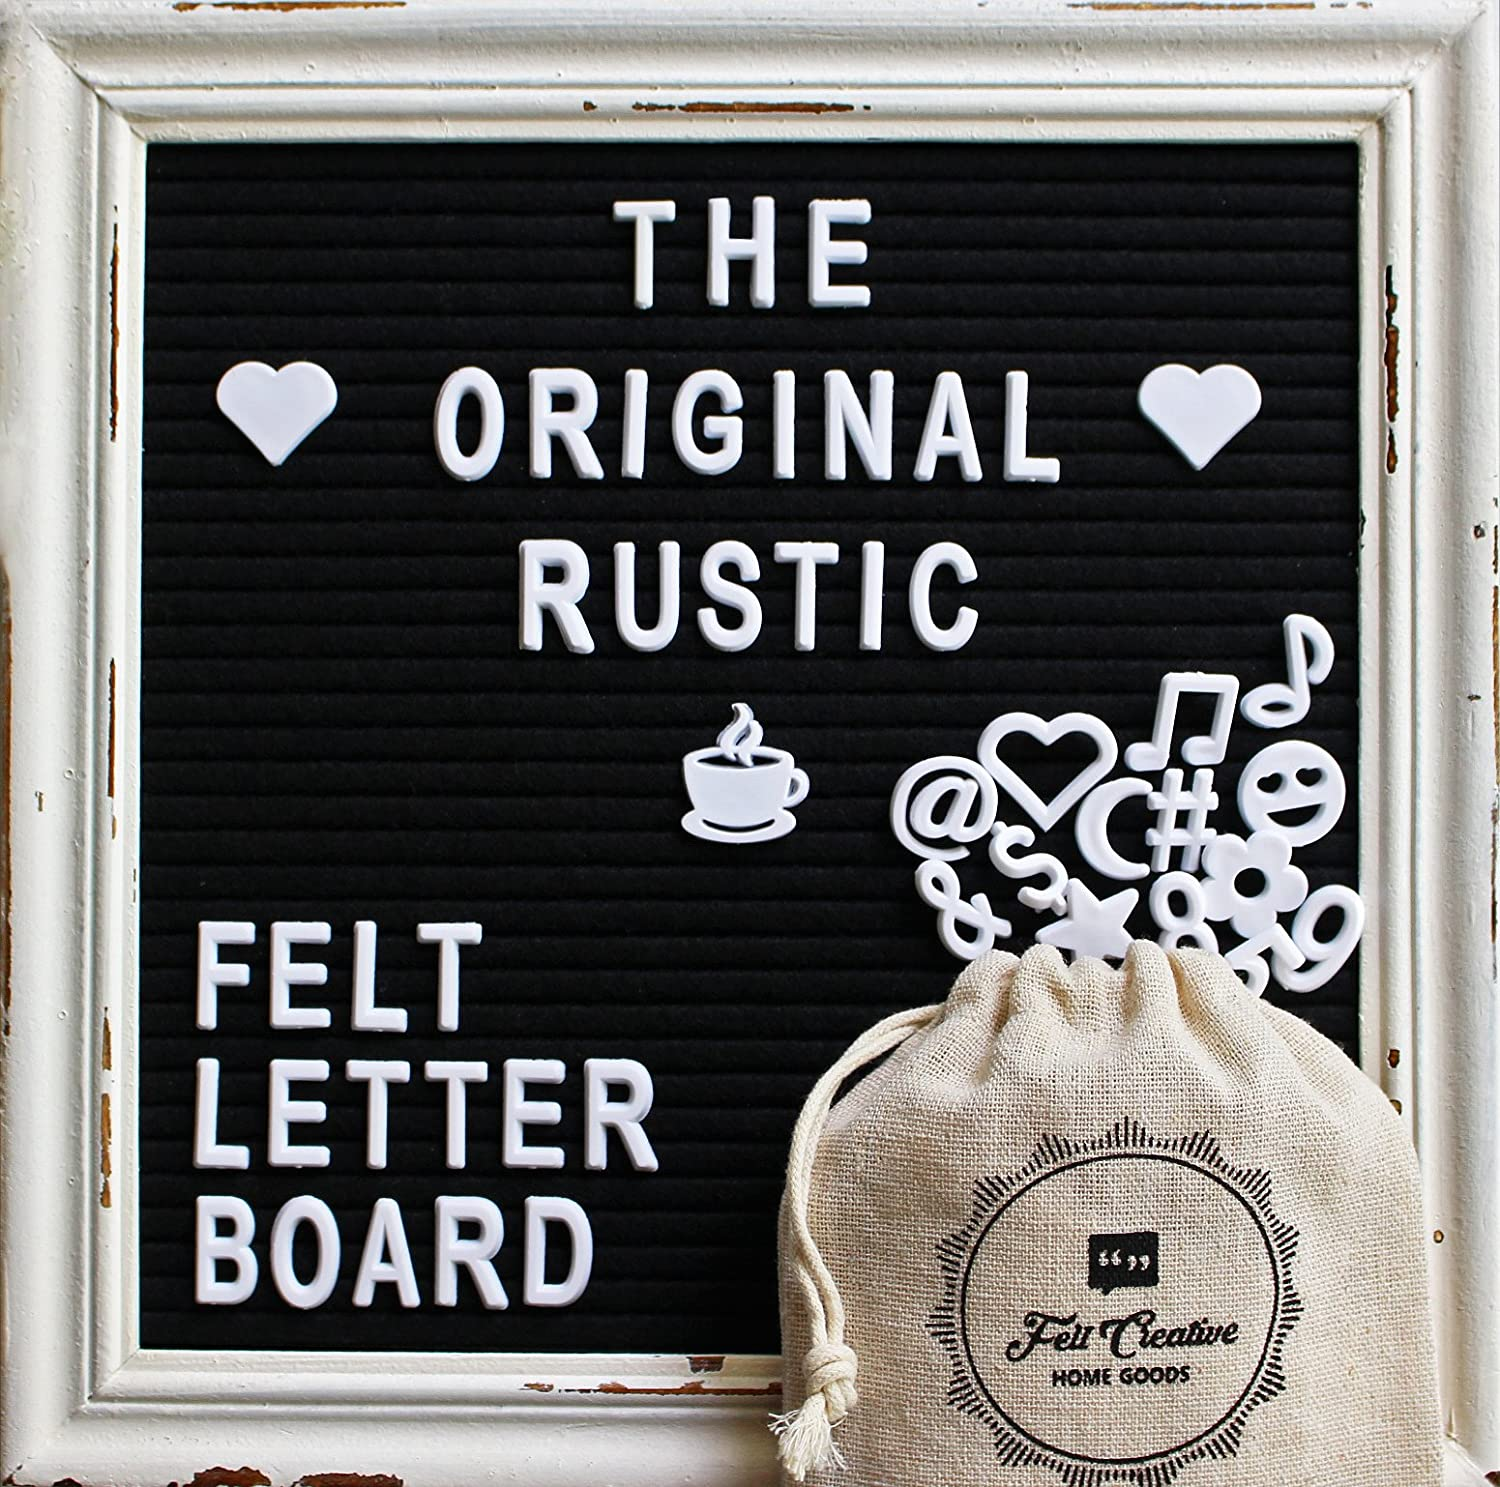 Black Felt Letter Board with Rustic White Wood Farmhouse Vintage Frame and Stand by Felt Creative Home Goods | 10x10 Inch Antique Changeable Message Board 350 White Alphabet Letters, Numbers, Emojis